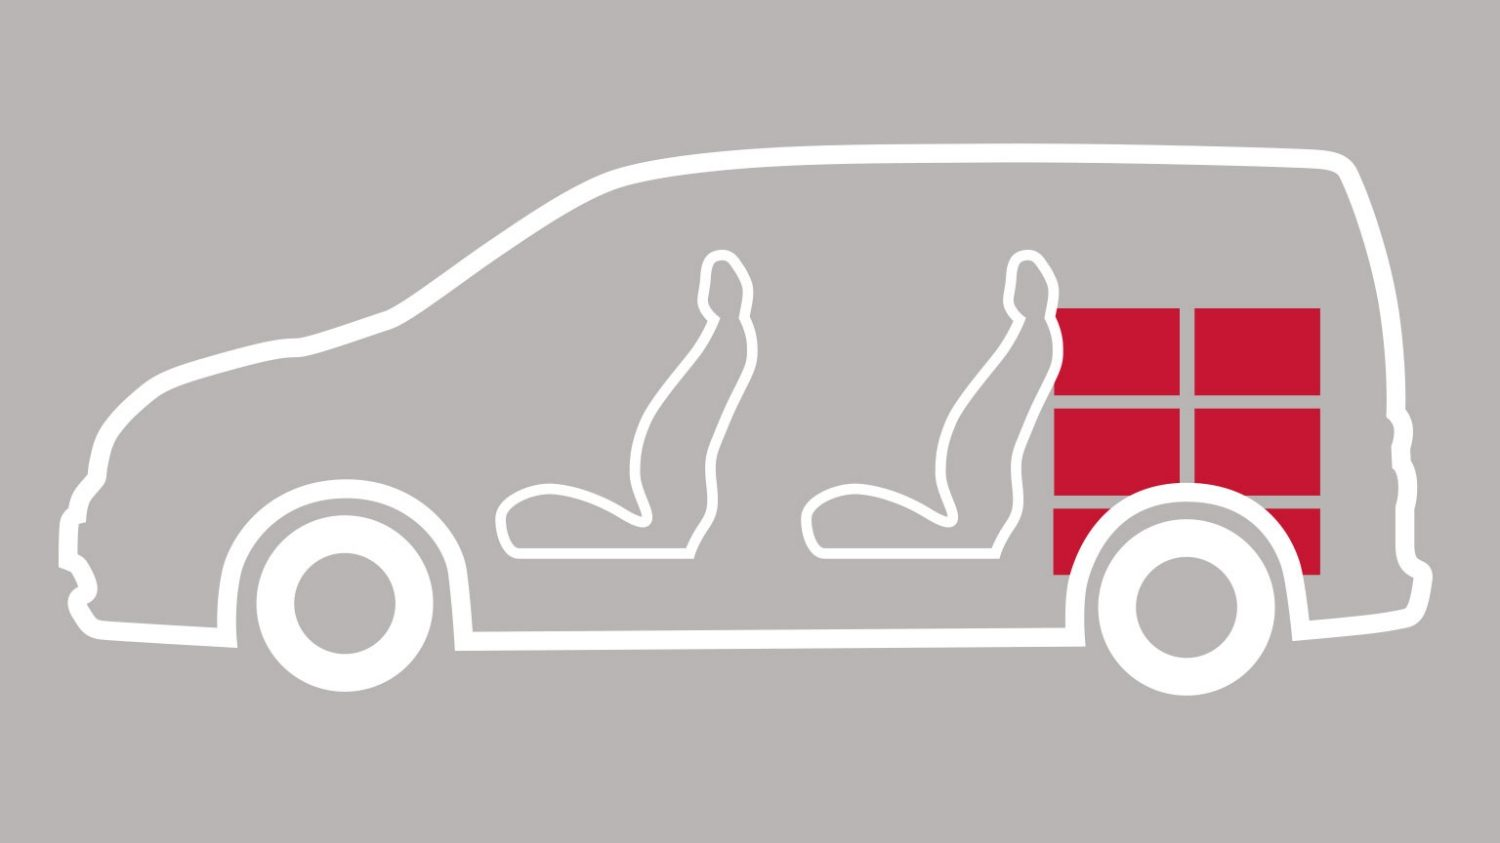 Nissan e-NV200 - illustration showing seating and cargo space